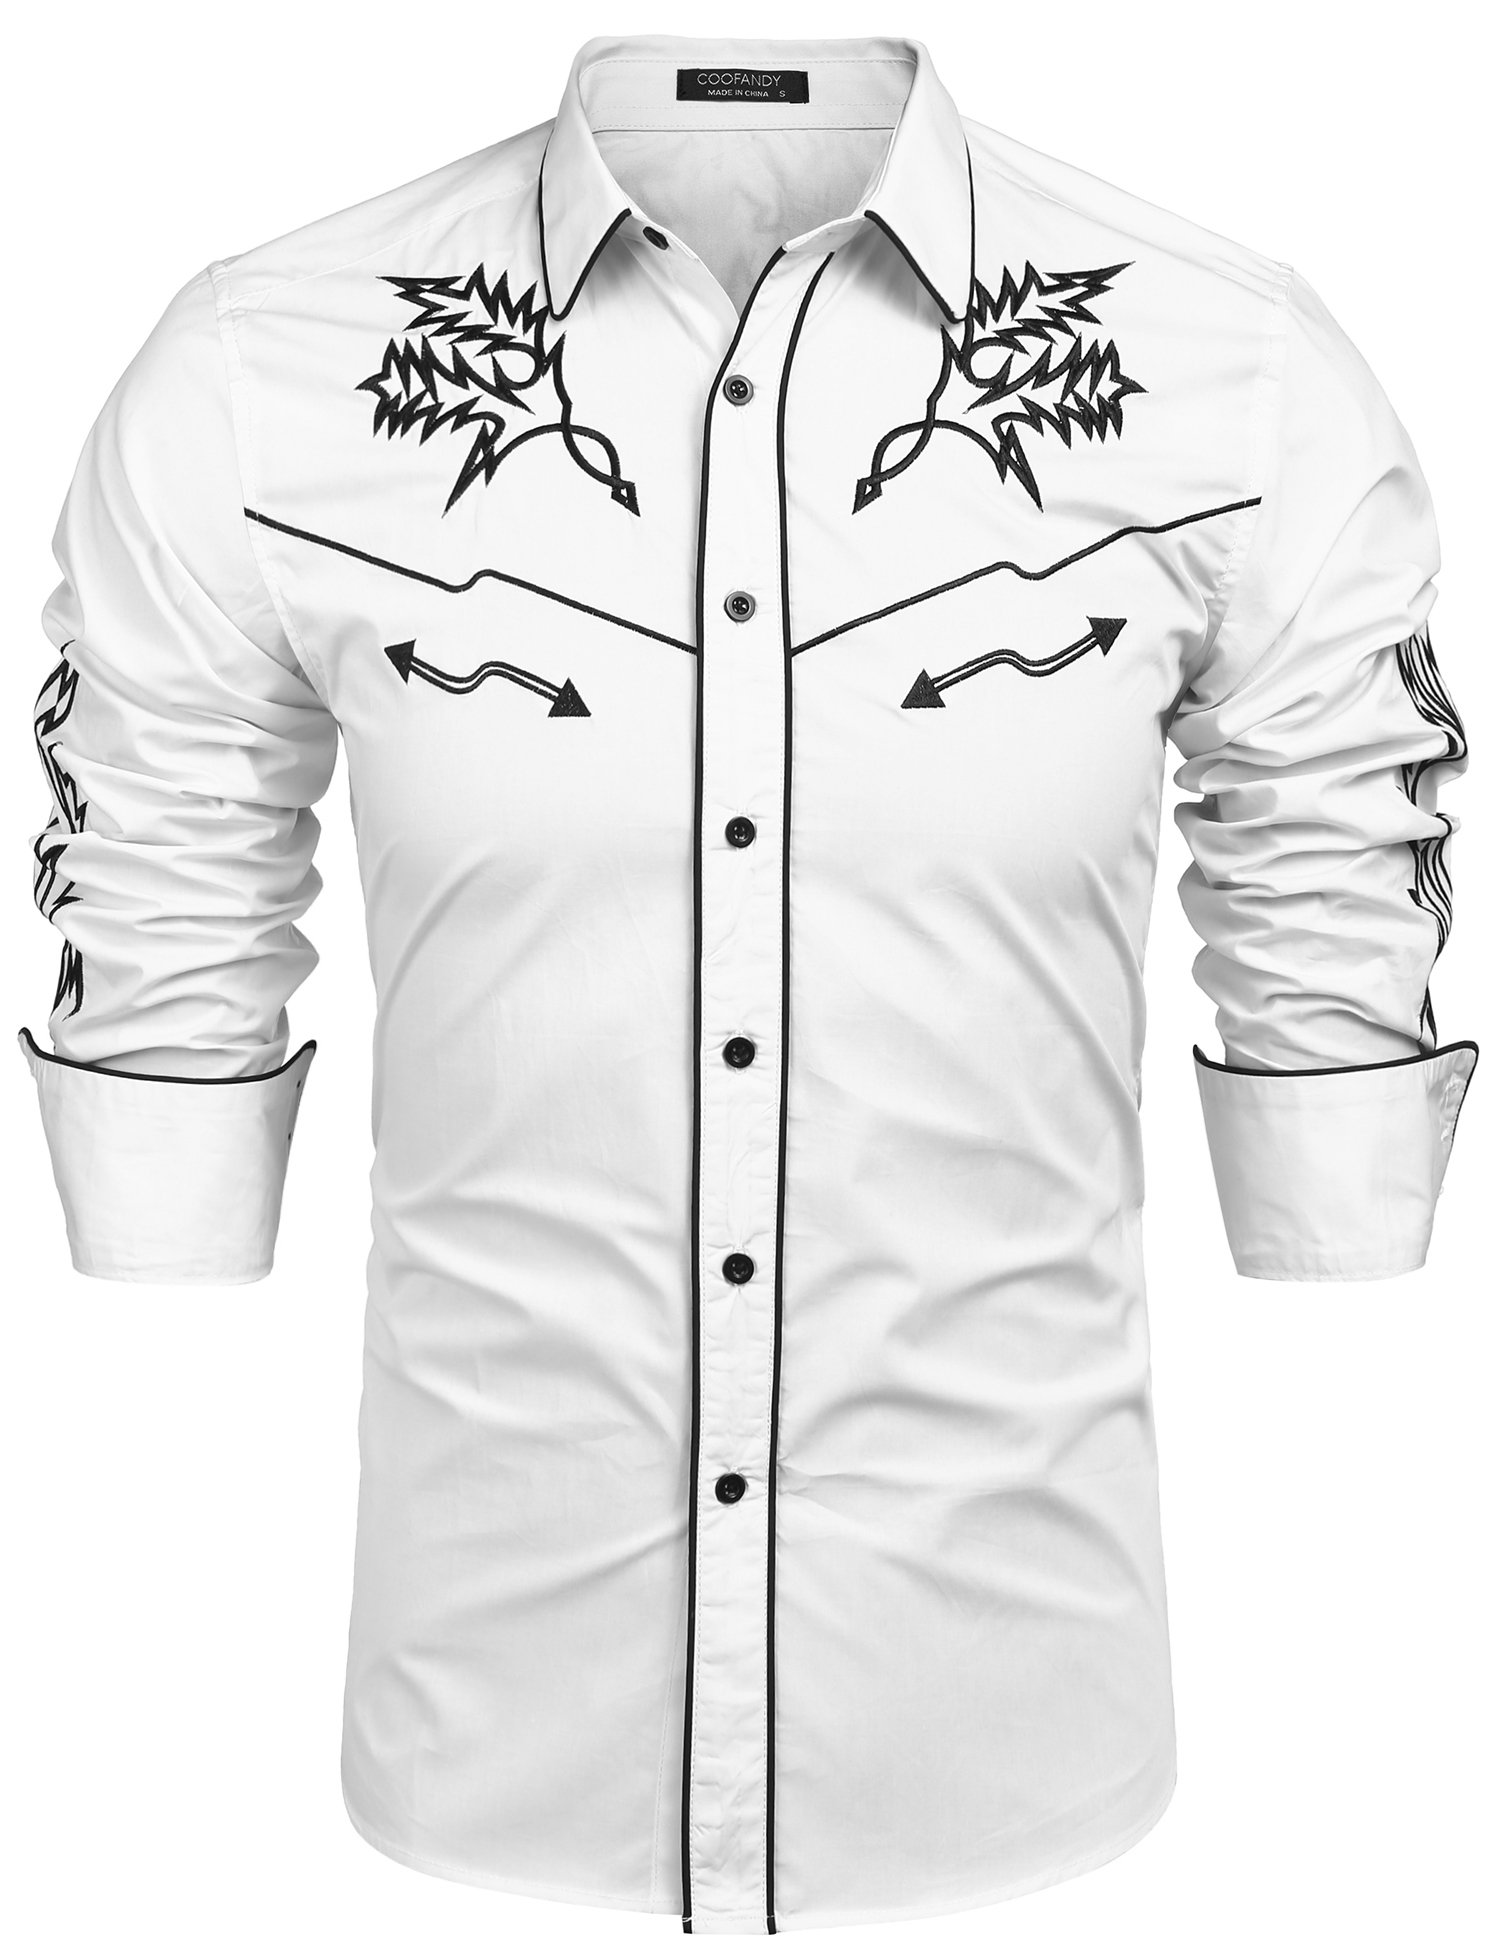 COOFANDY Men's Long Sleeve Embroidered Shirt Casual Slim Fit Button Down Western Shirts ,White ,Large